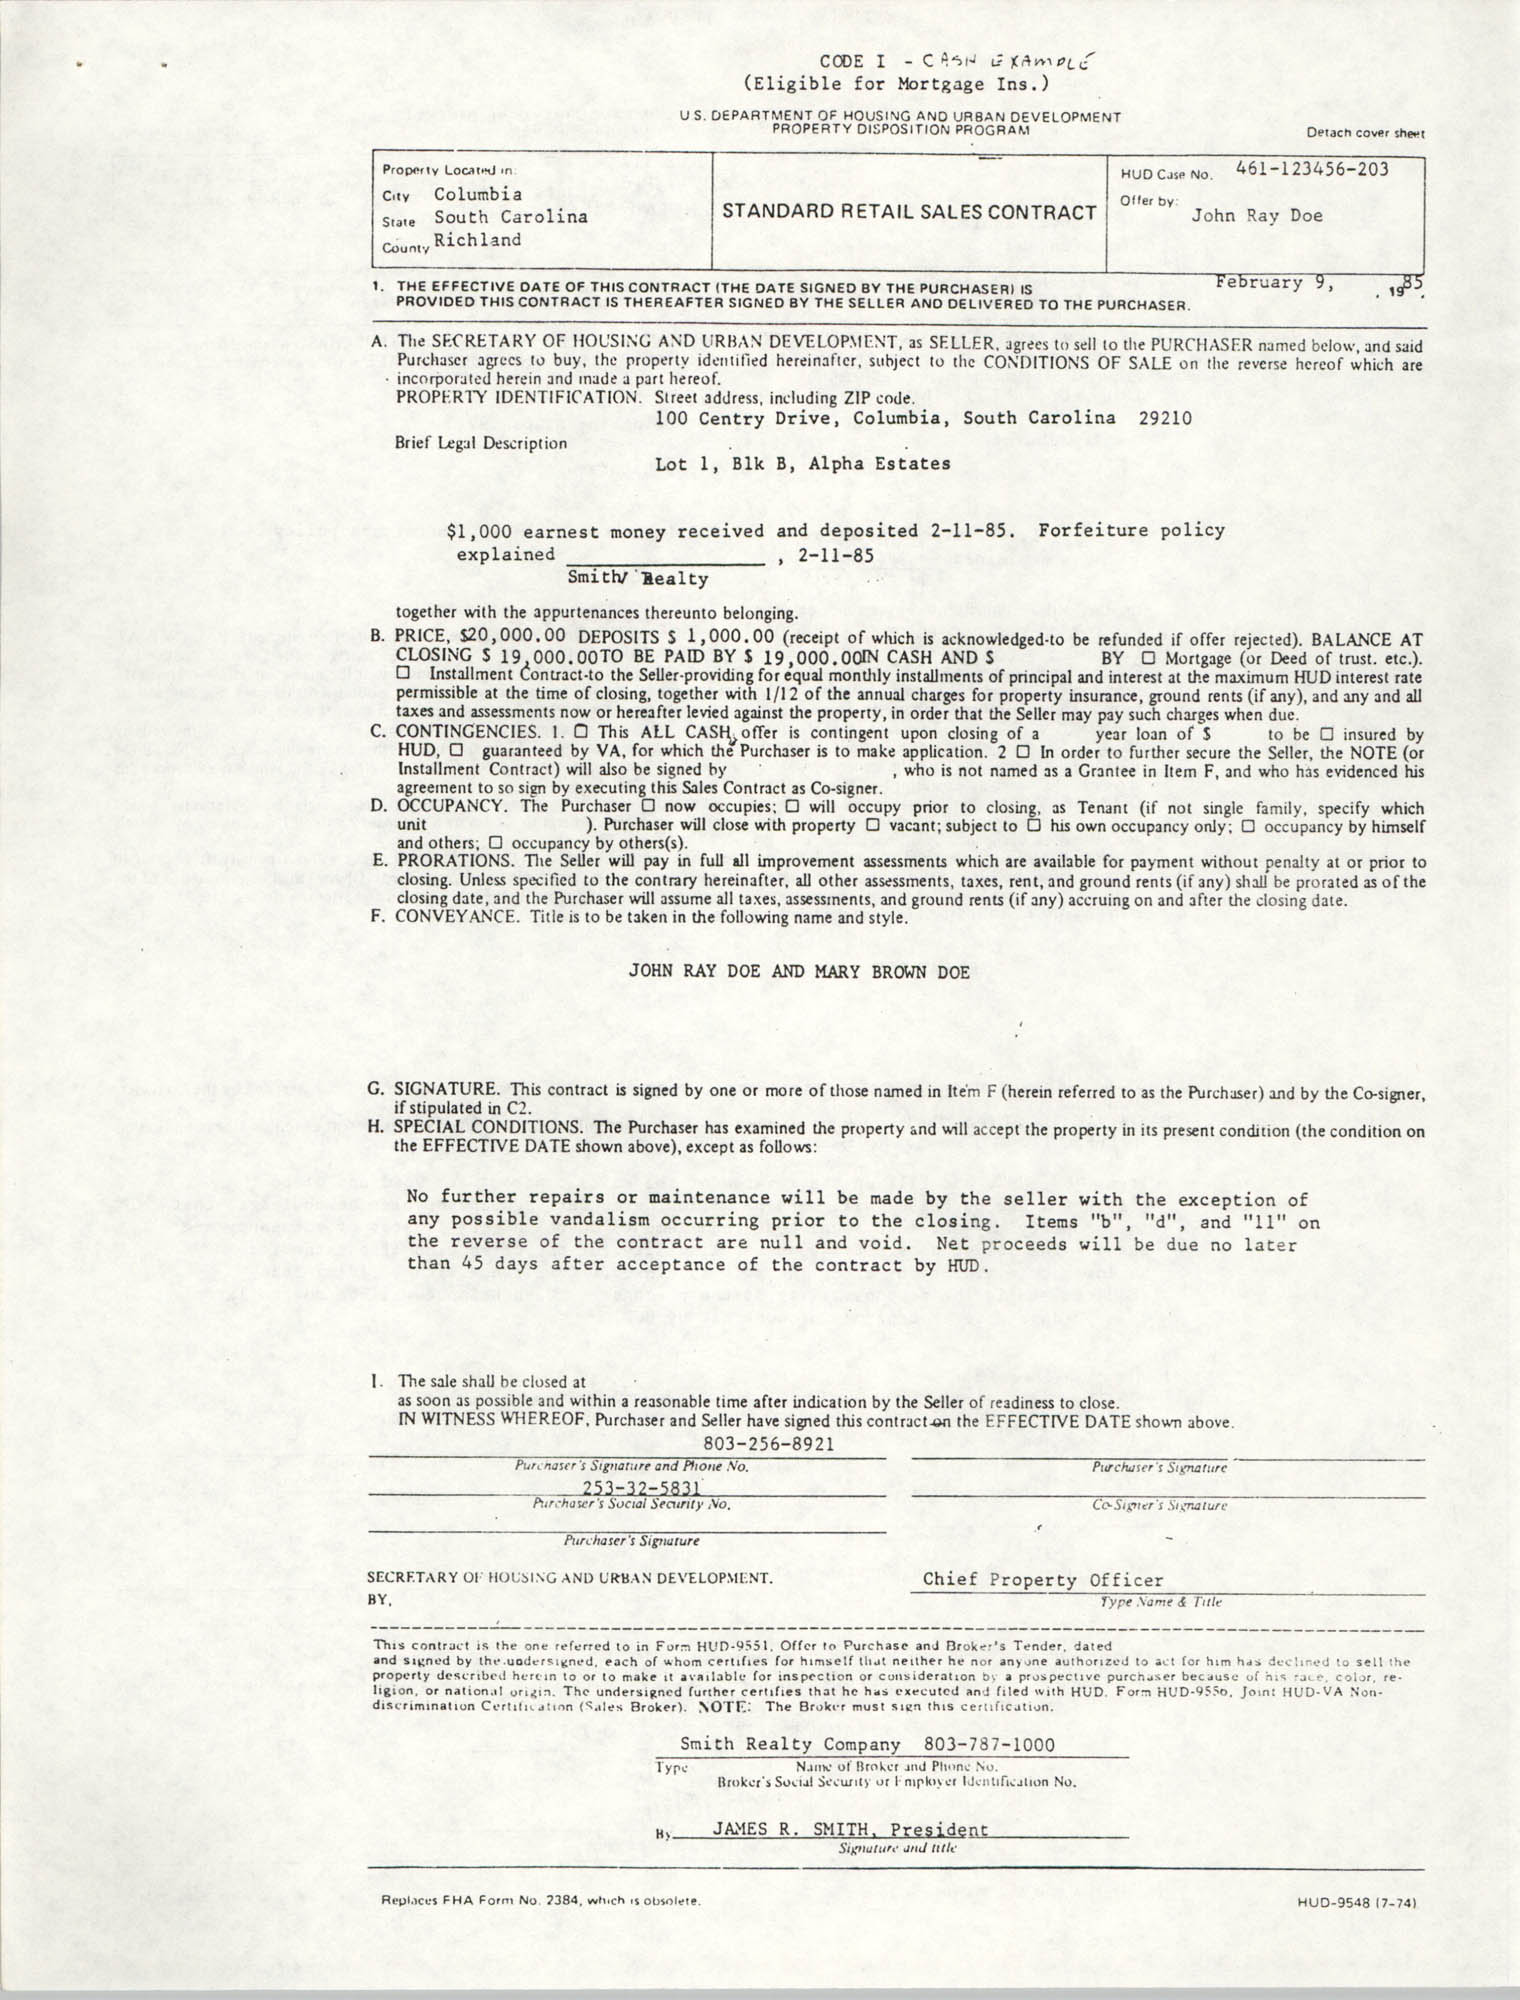 Standard Retail Sales Contract, Code I, Cash Example